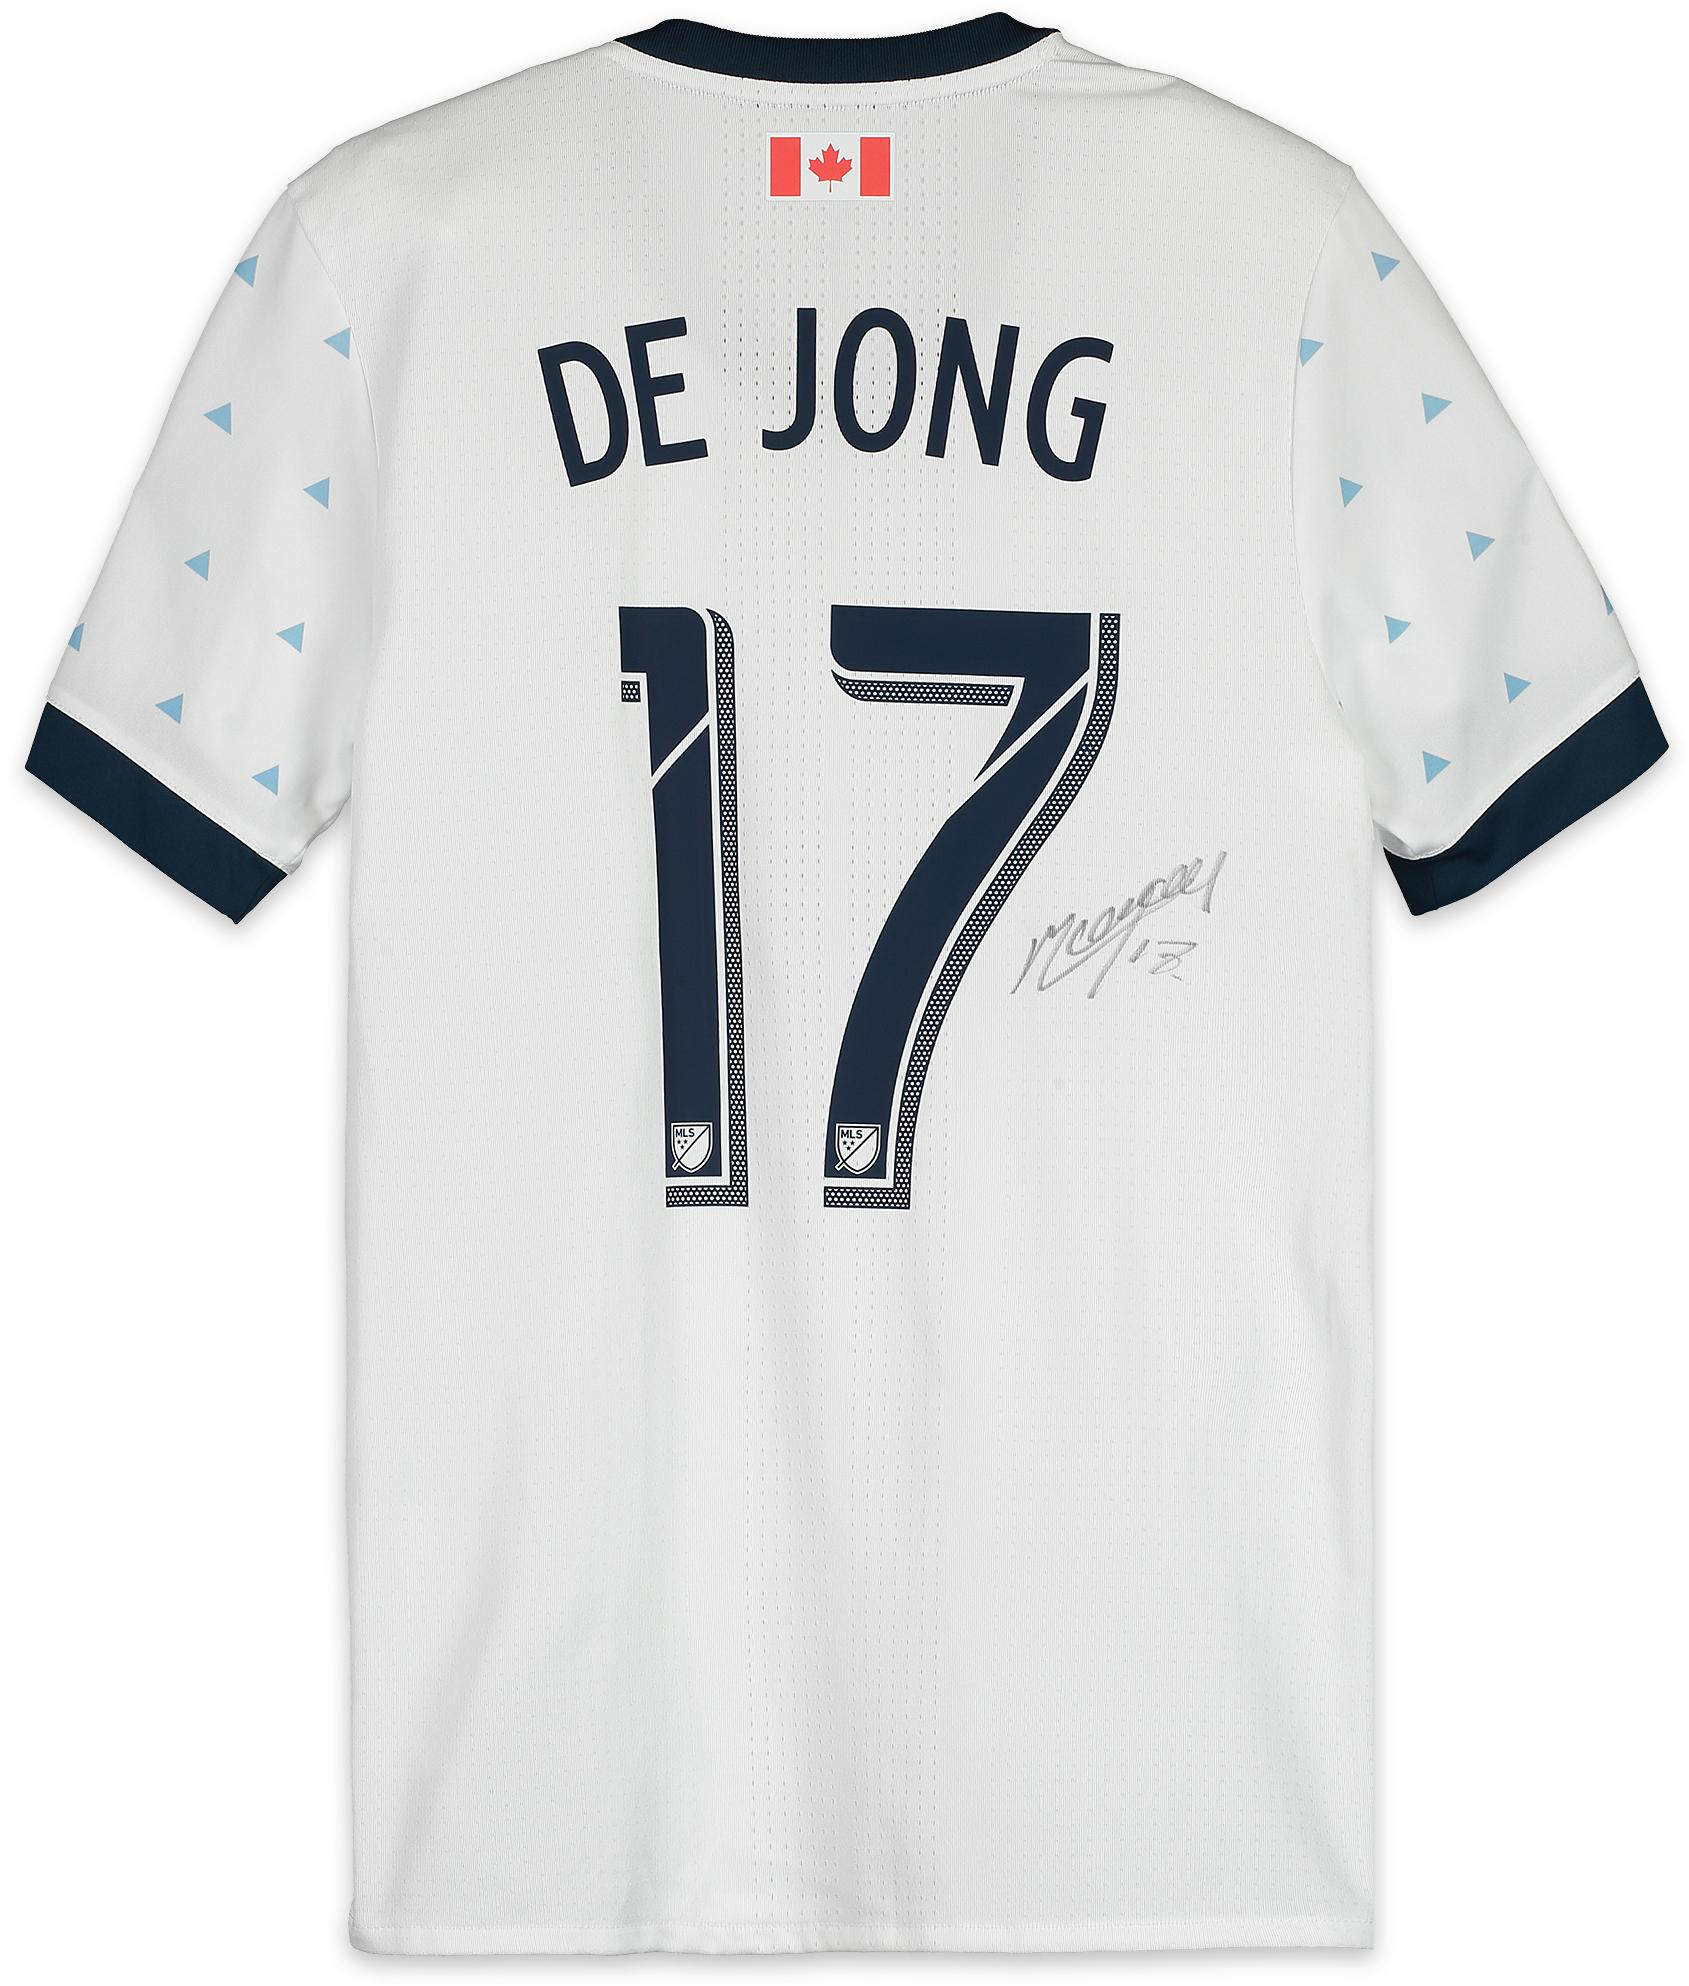 big sale 36c9f 93e6d Marcel De Jong Vancouver Whitecaps FC Autographed Match-Used Gray #17  Jersey from the 2018 MLS Season - Fanatics Authentic Certified